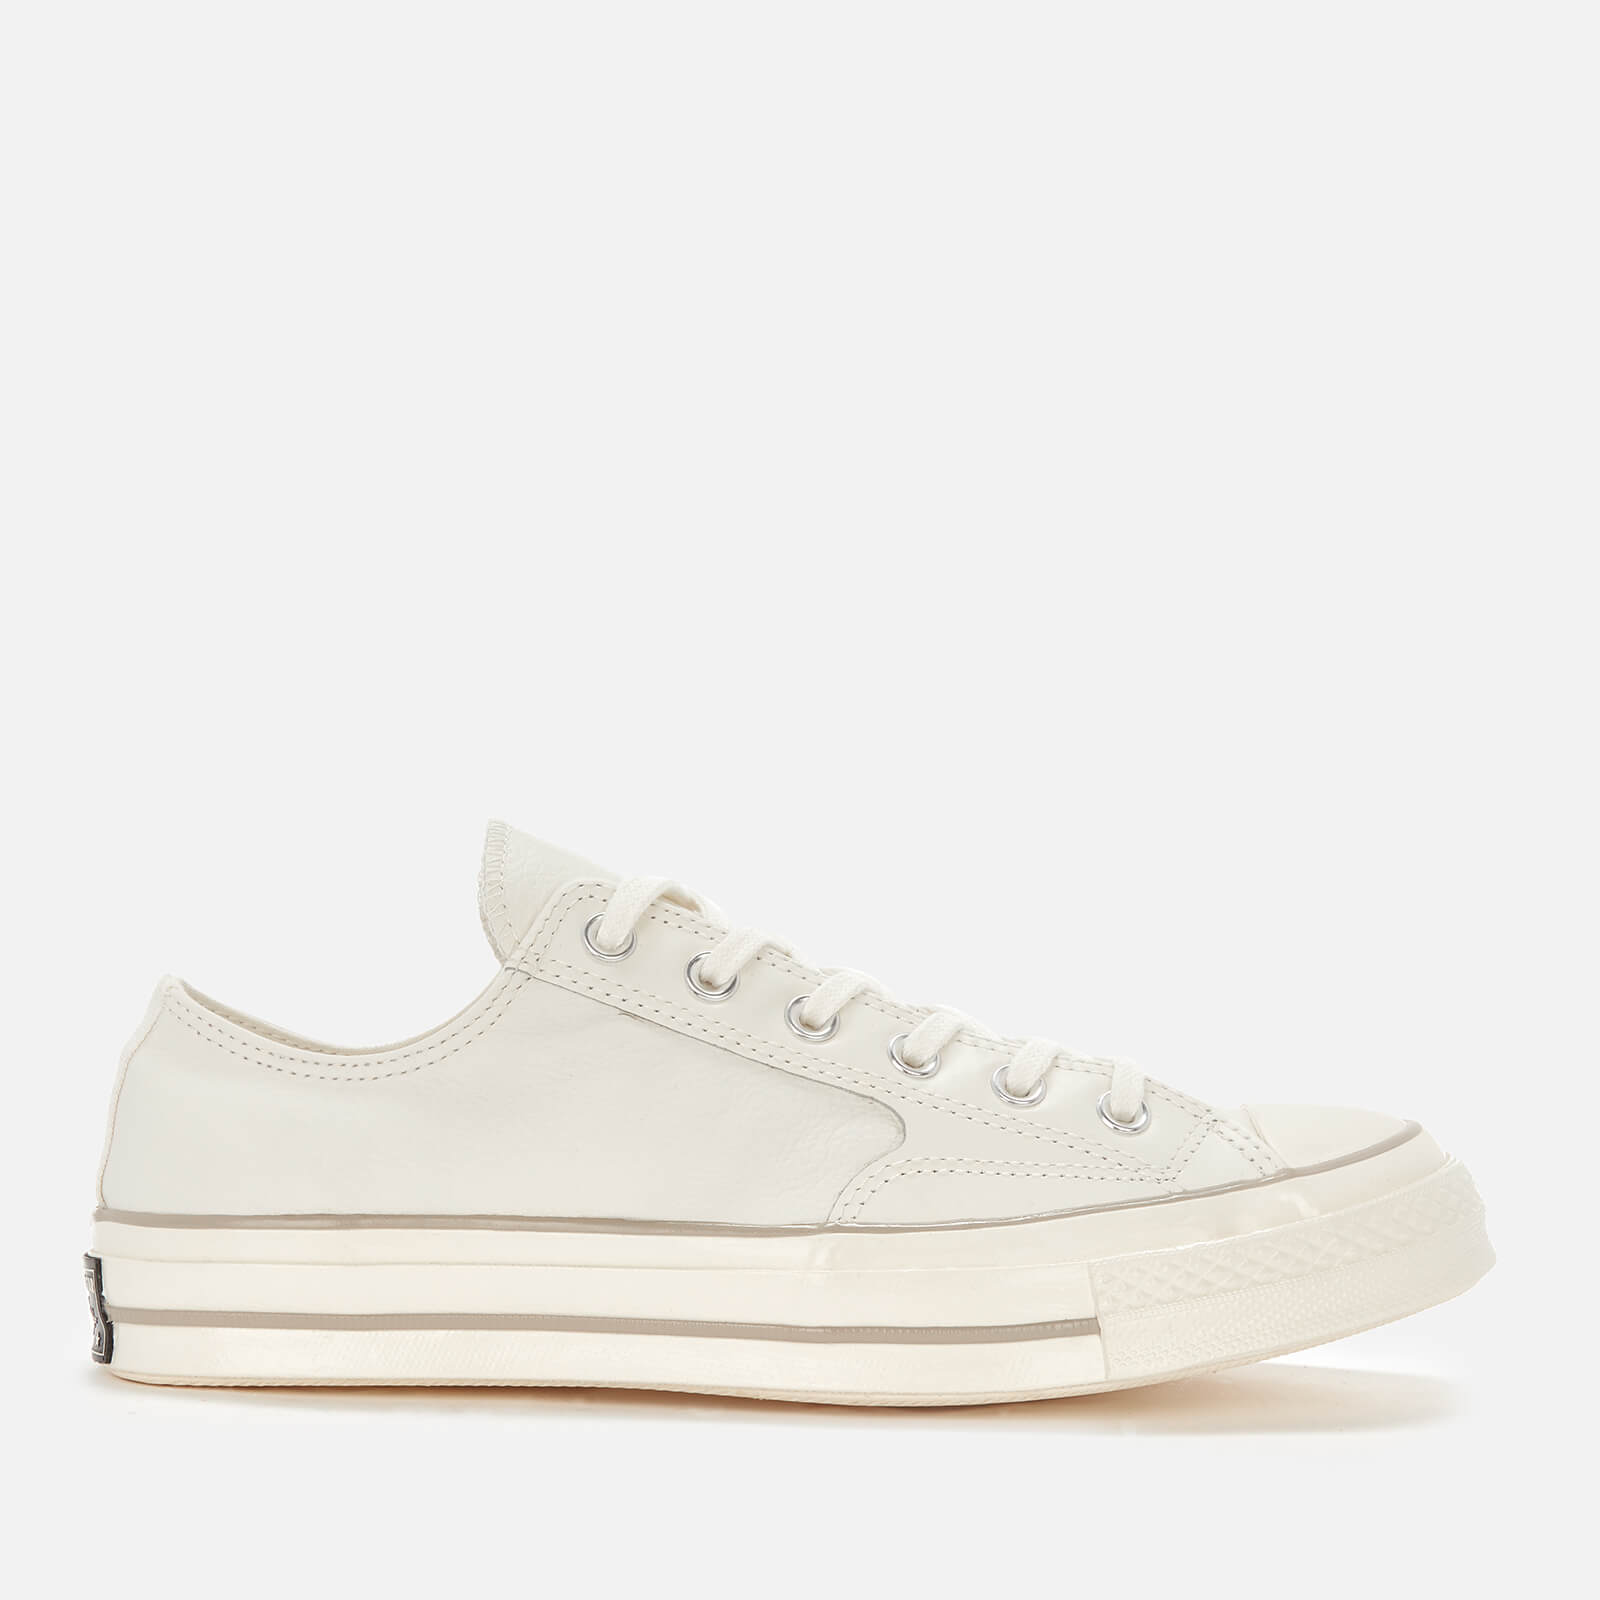 500c0e9b4314 Converse Men s Chuck Taylor All Star 70 Ox Trainers - Egret Papyrus - Free  UK Delivery over £50